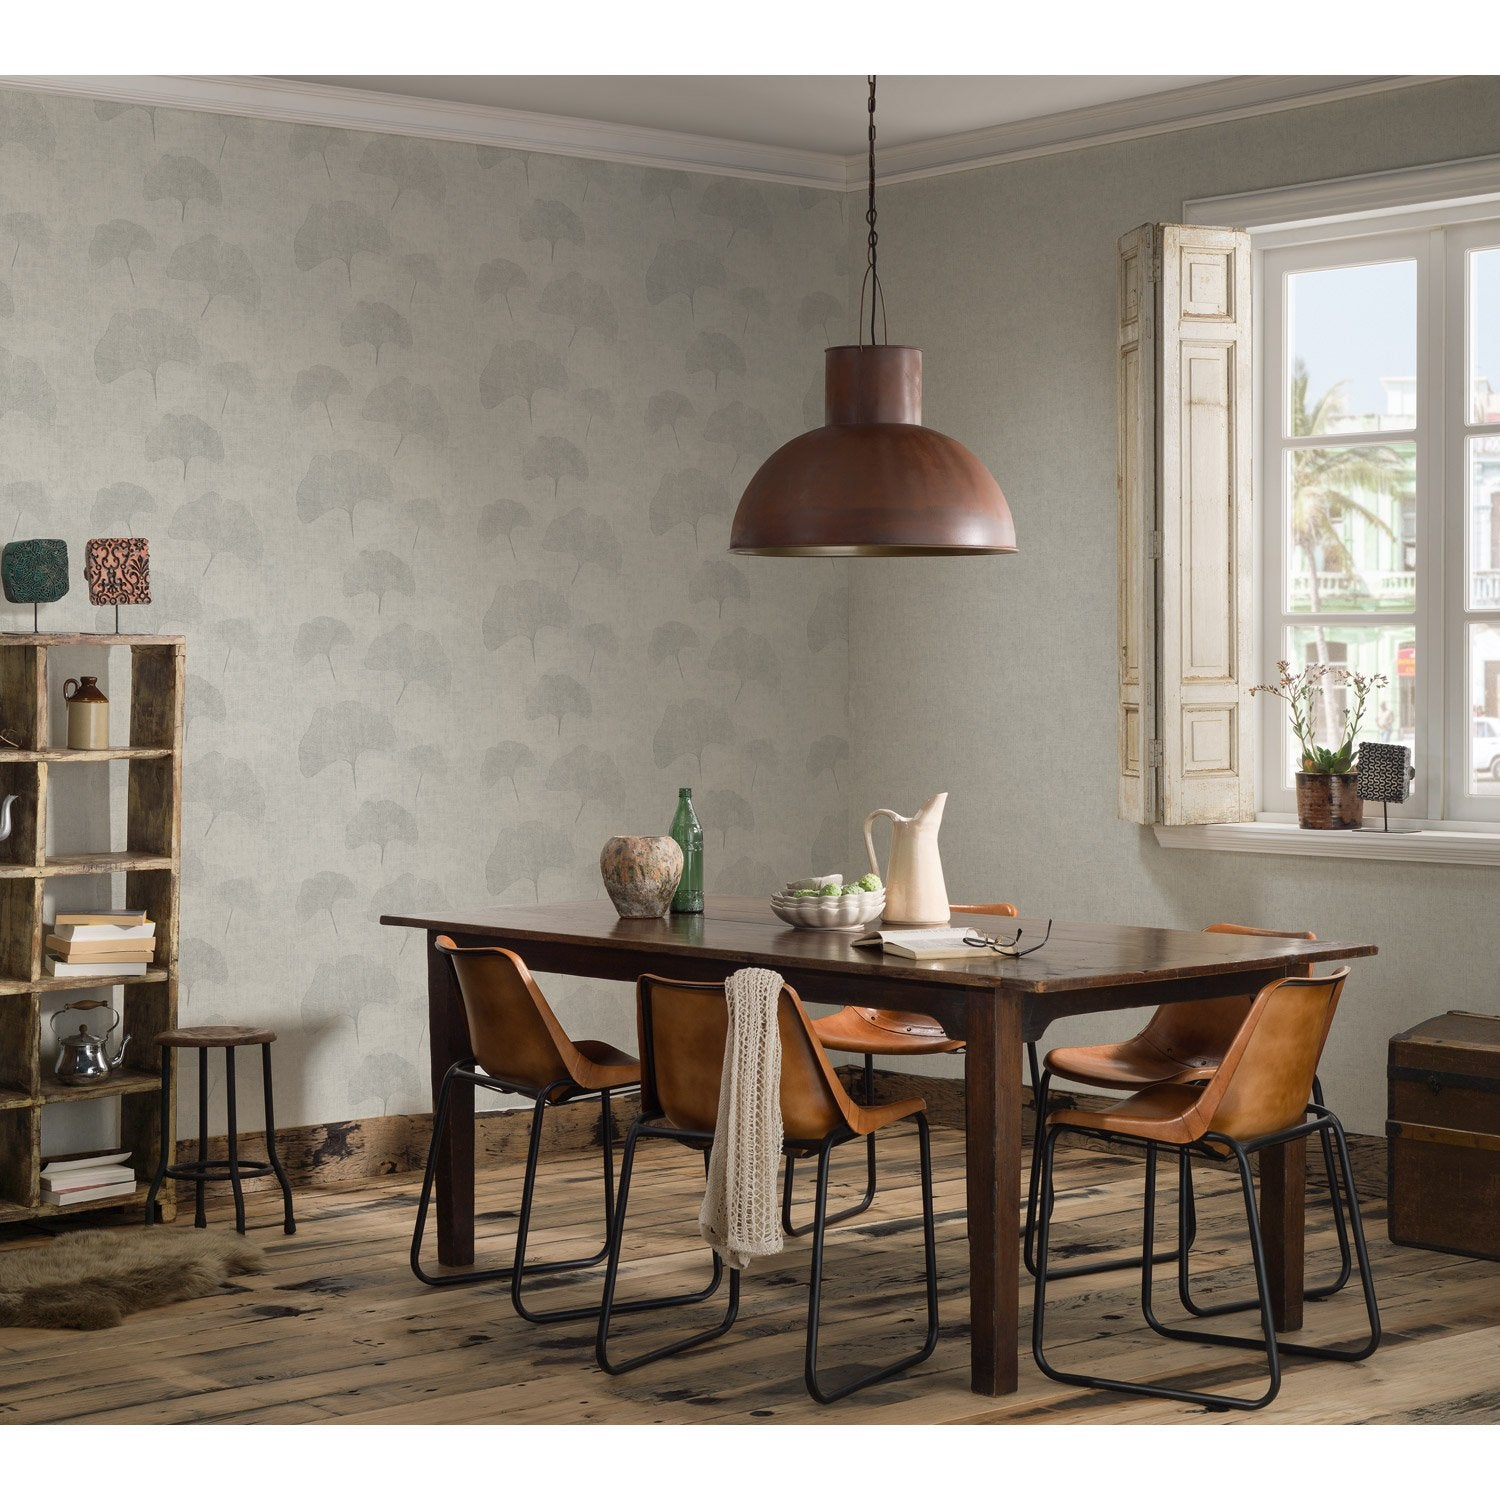 papier peint intiss ginkgo gris clair leroy merlin. Black Bedroom Furniture Sets. Home Design Ideas